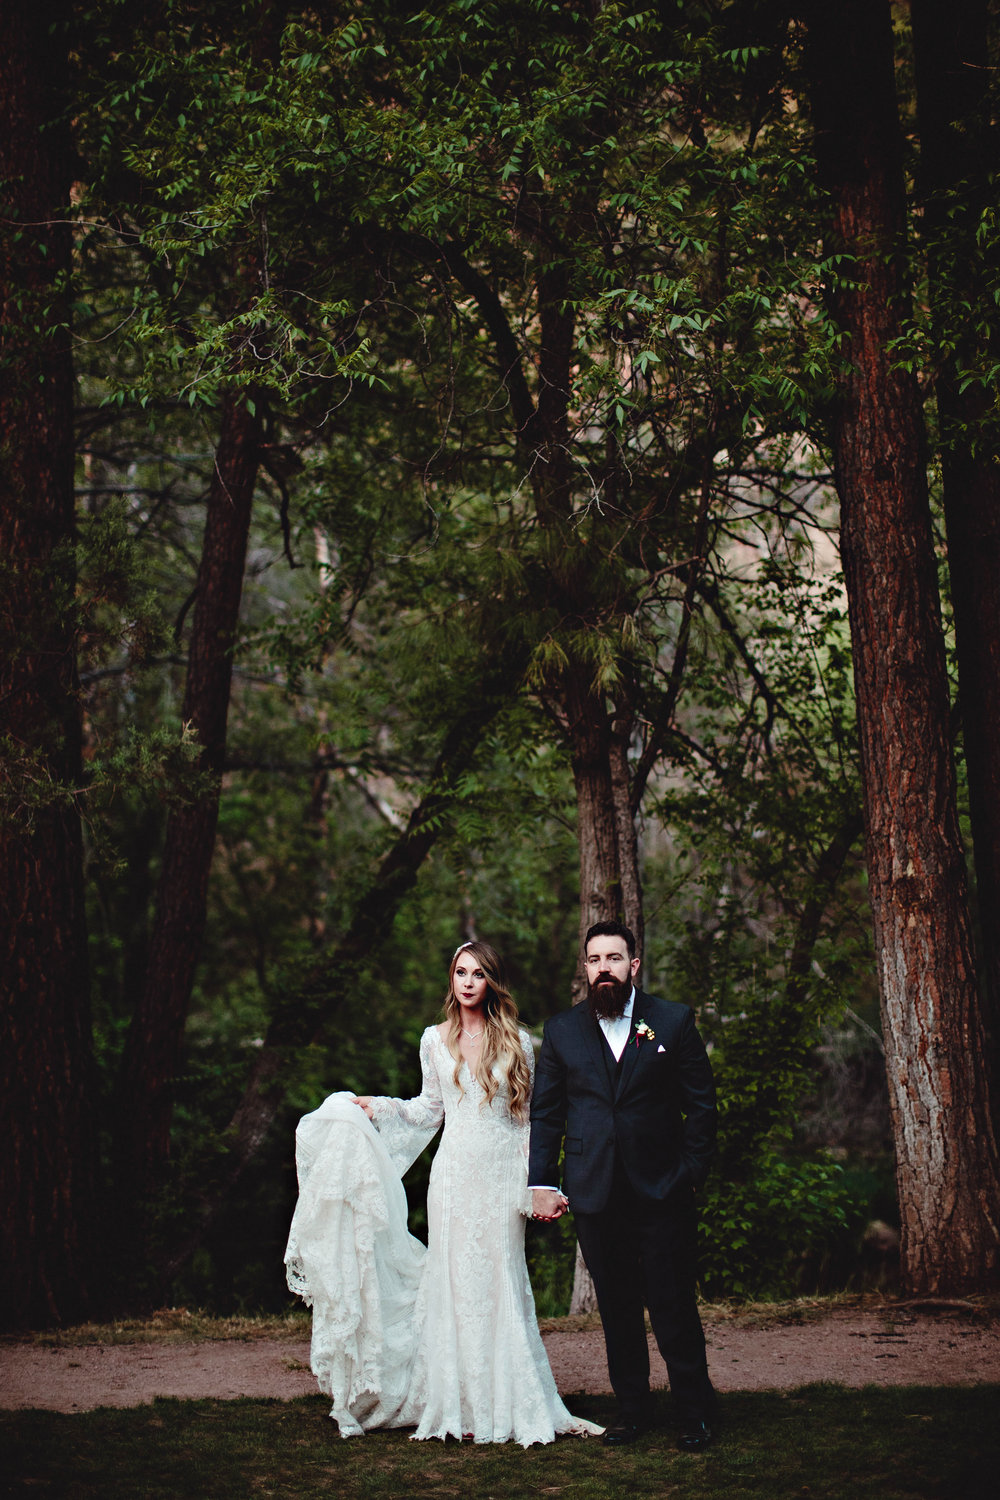 weddings-payson-19.jpg